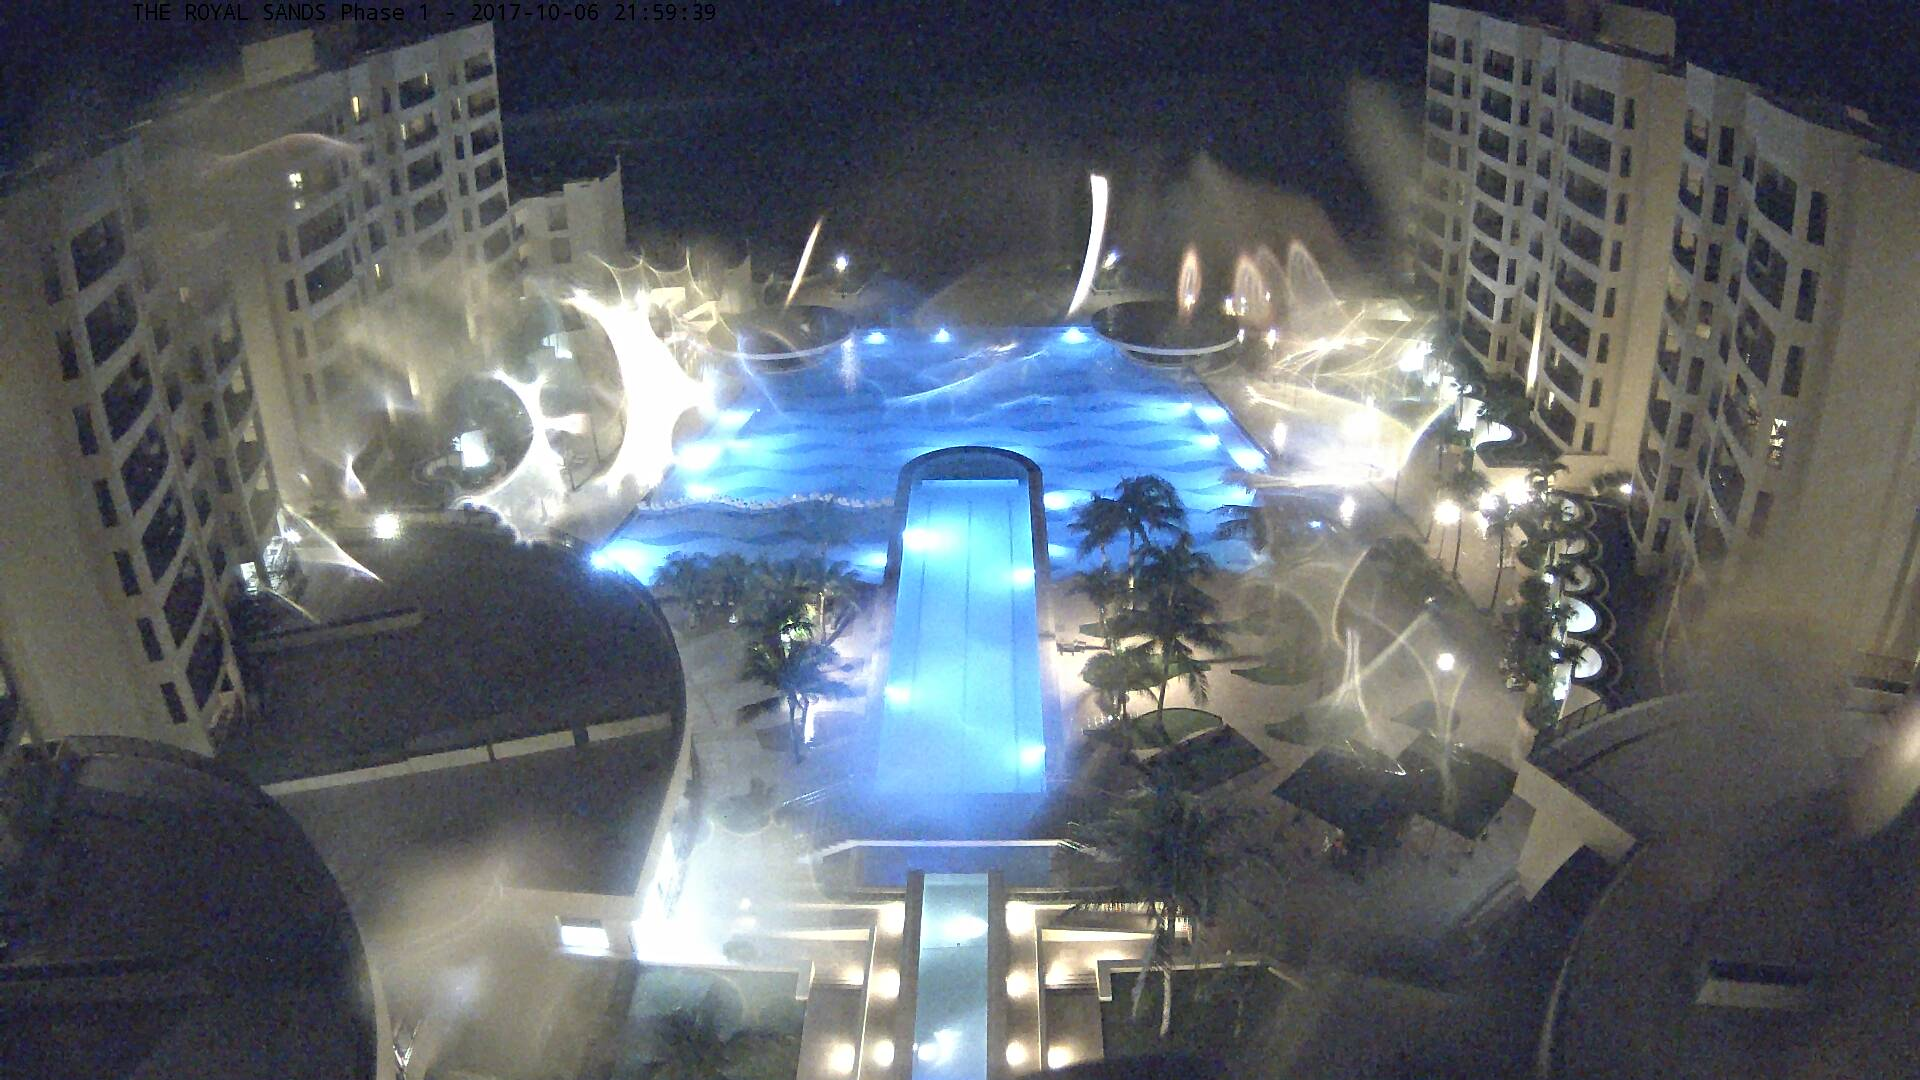 Royal Sands Cancun Webcam (Nate 2017)